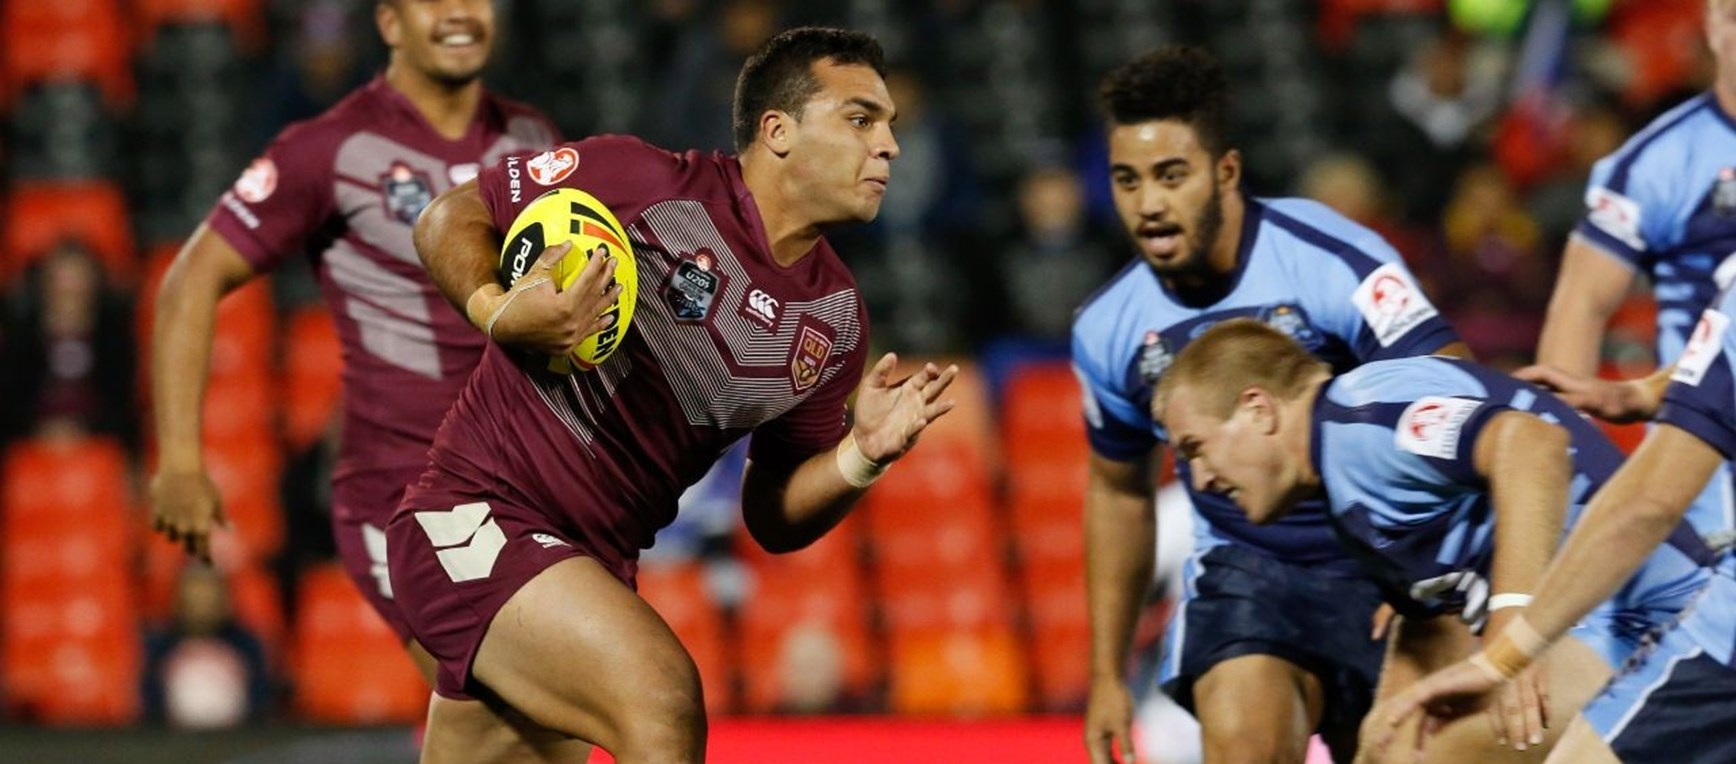 Photo gallery: Qld v NSW